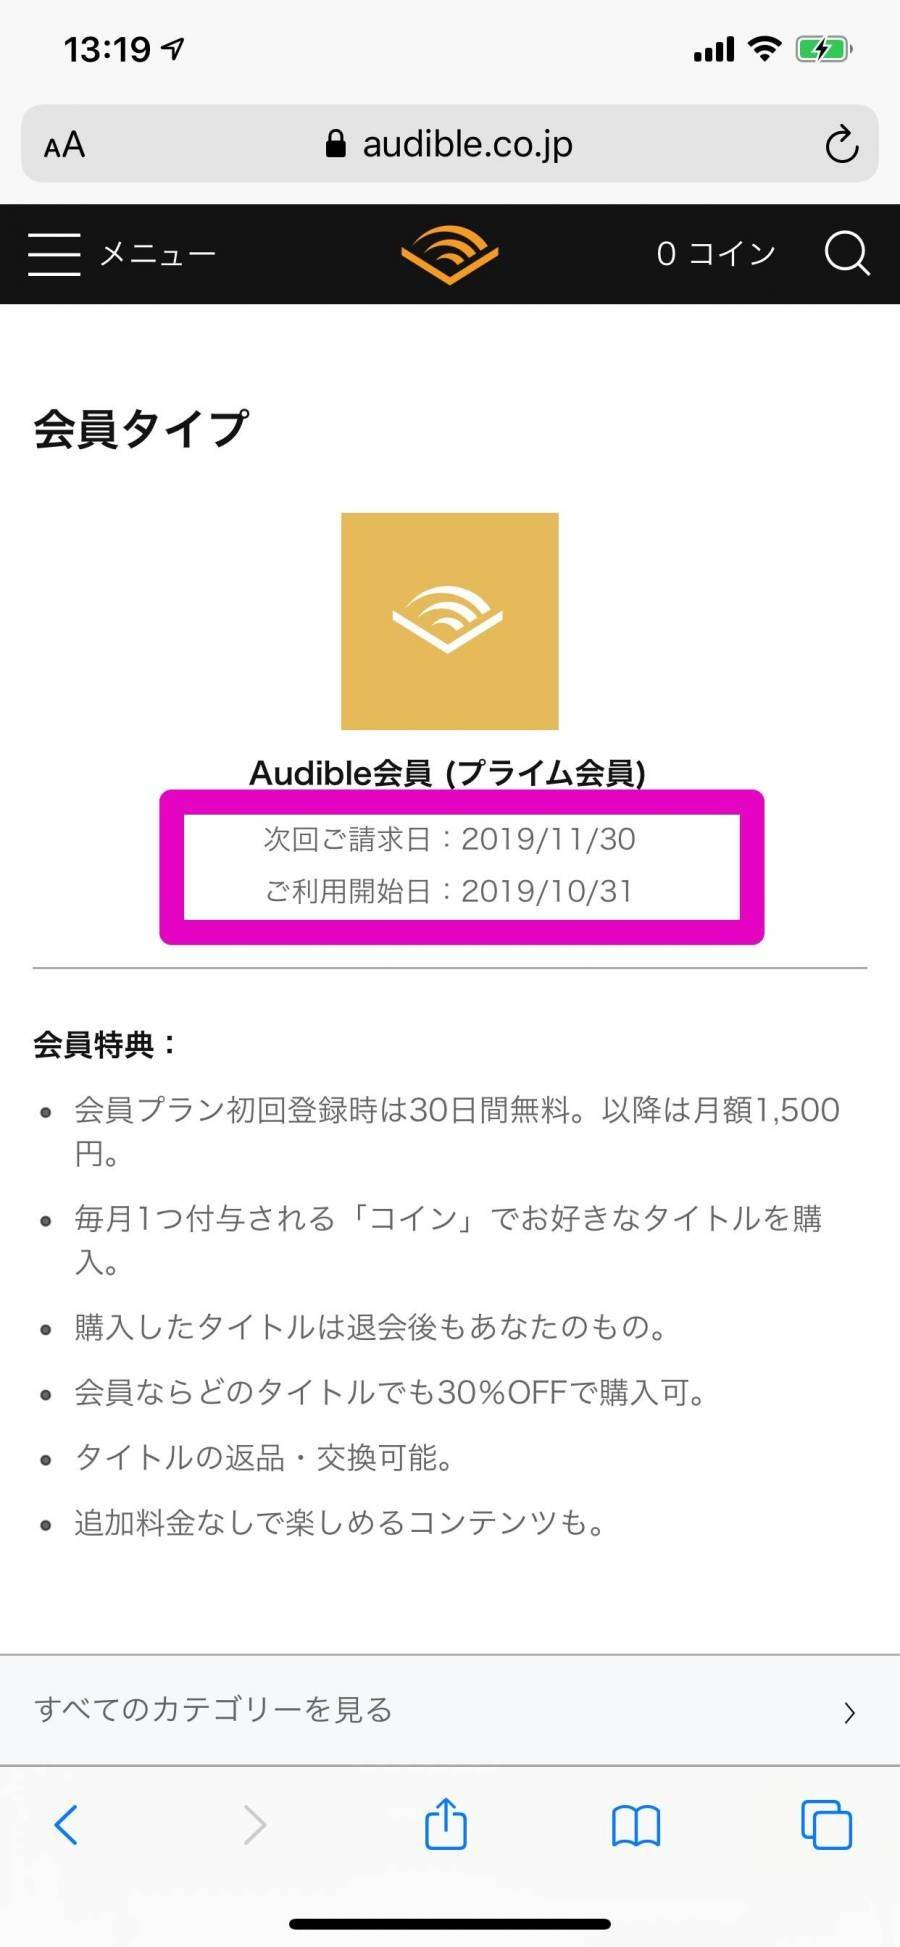 Audible 会員情報